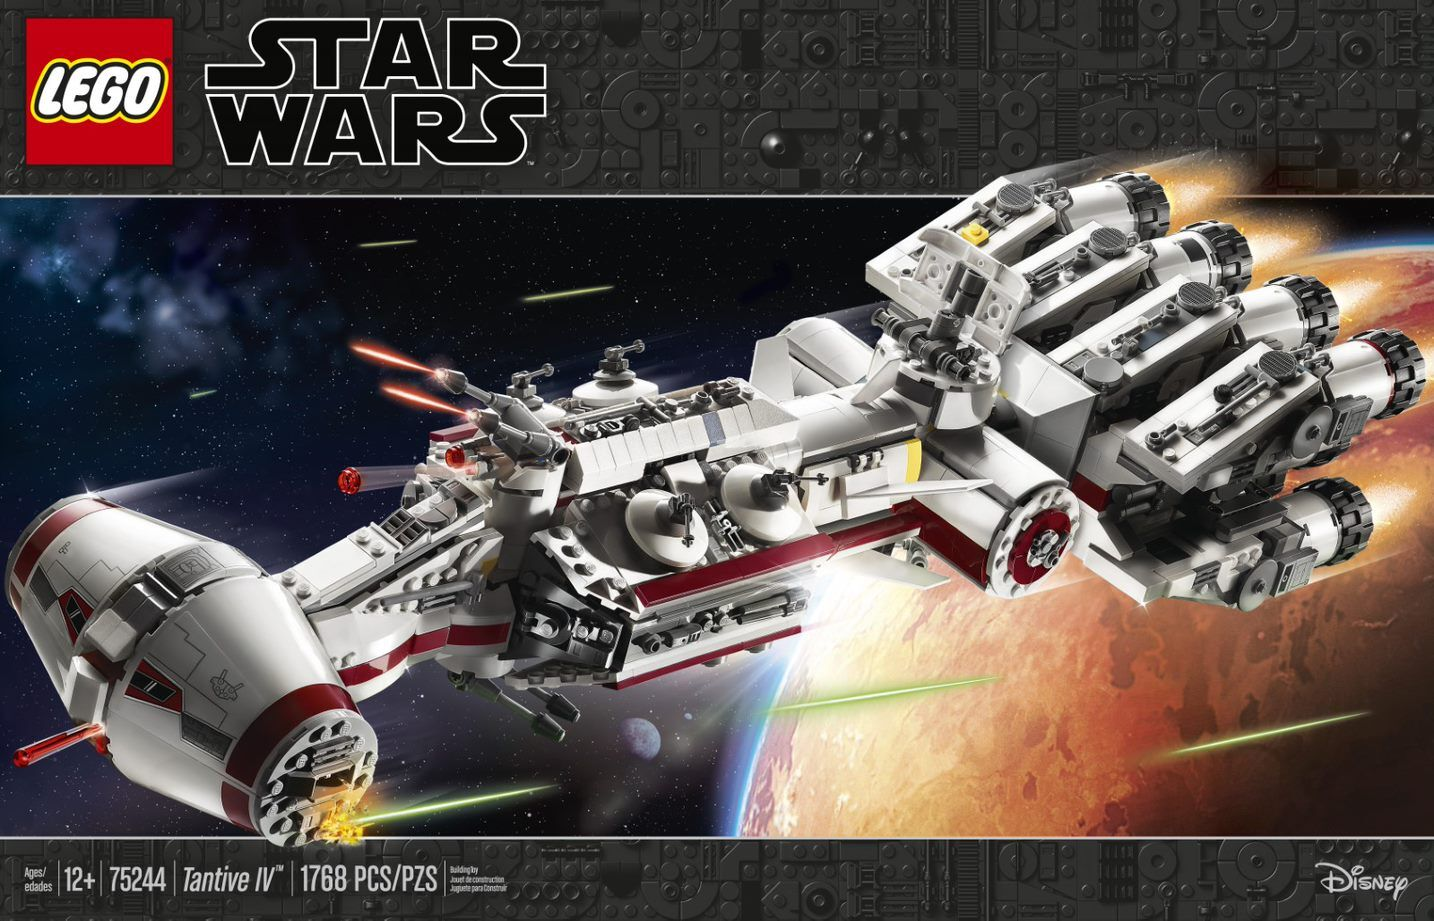 LEGO Star Wars adds another ship to its fleet: The Tantive IV